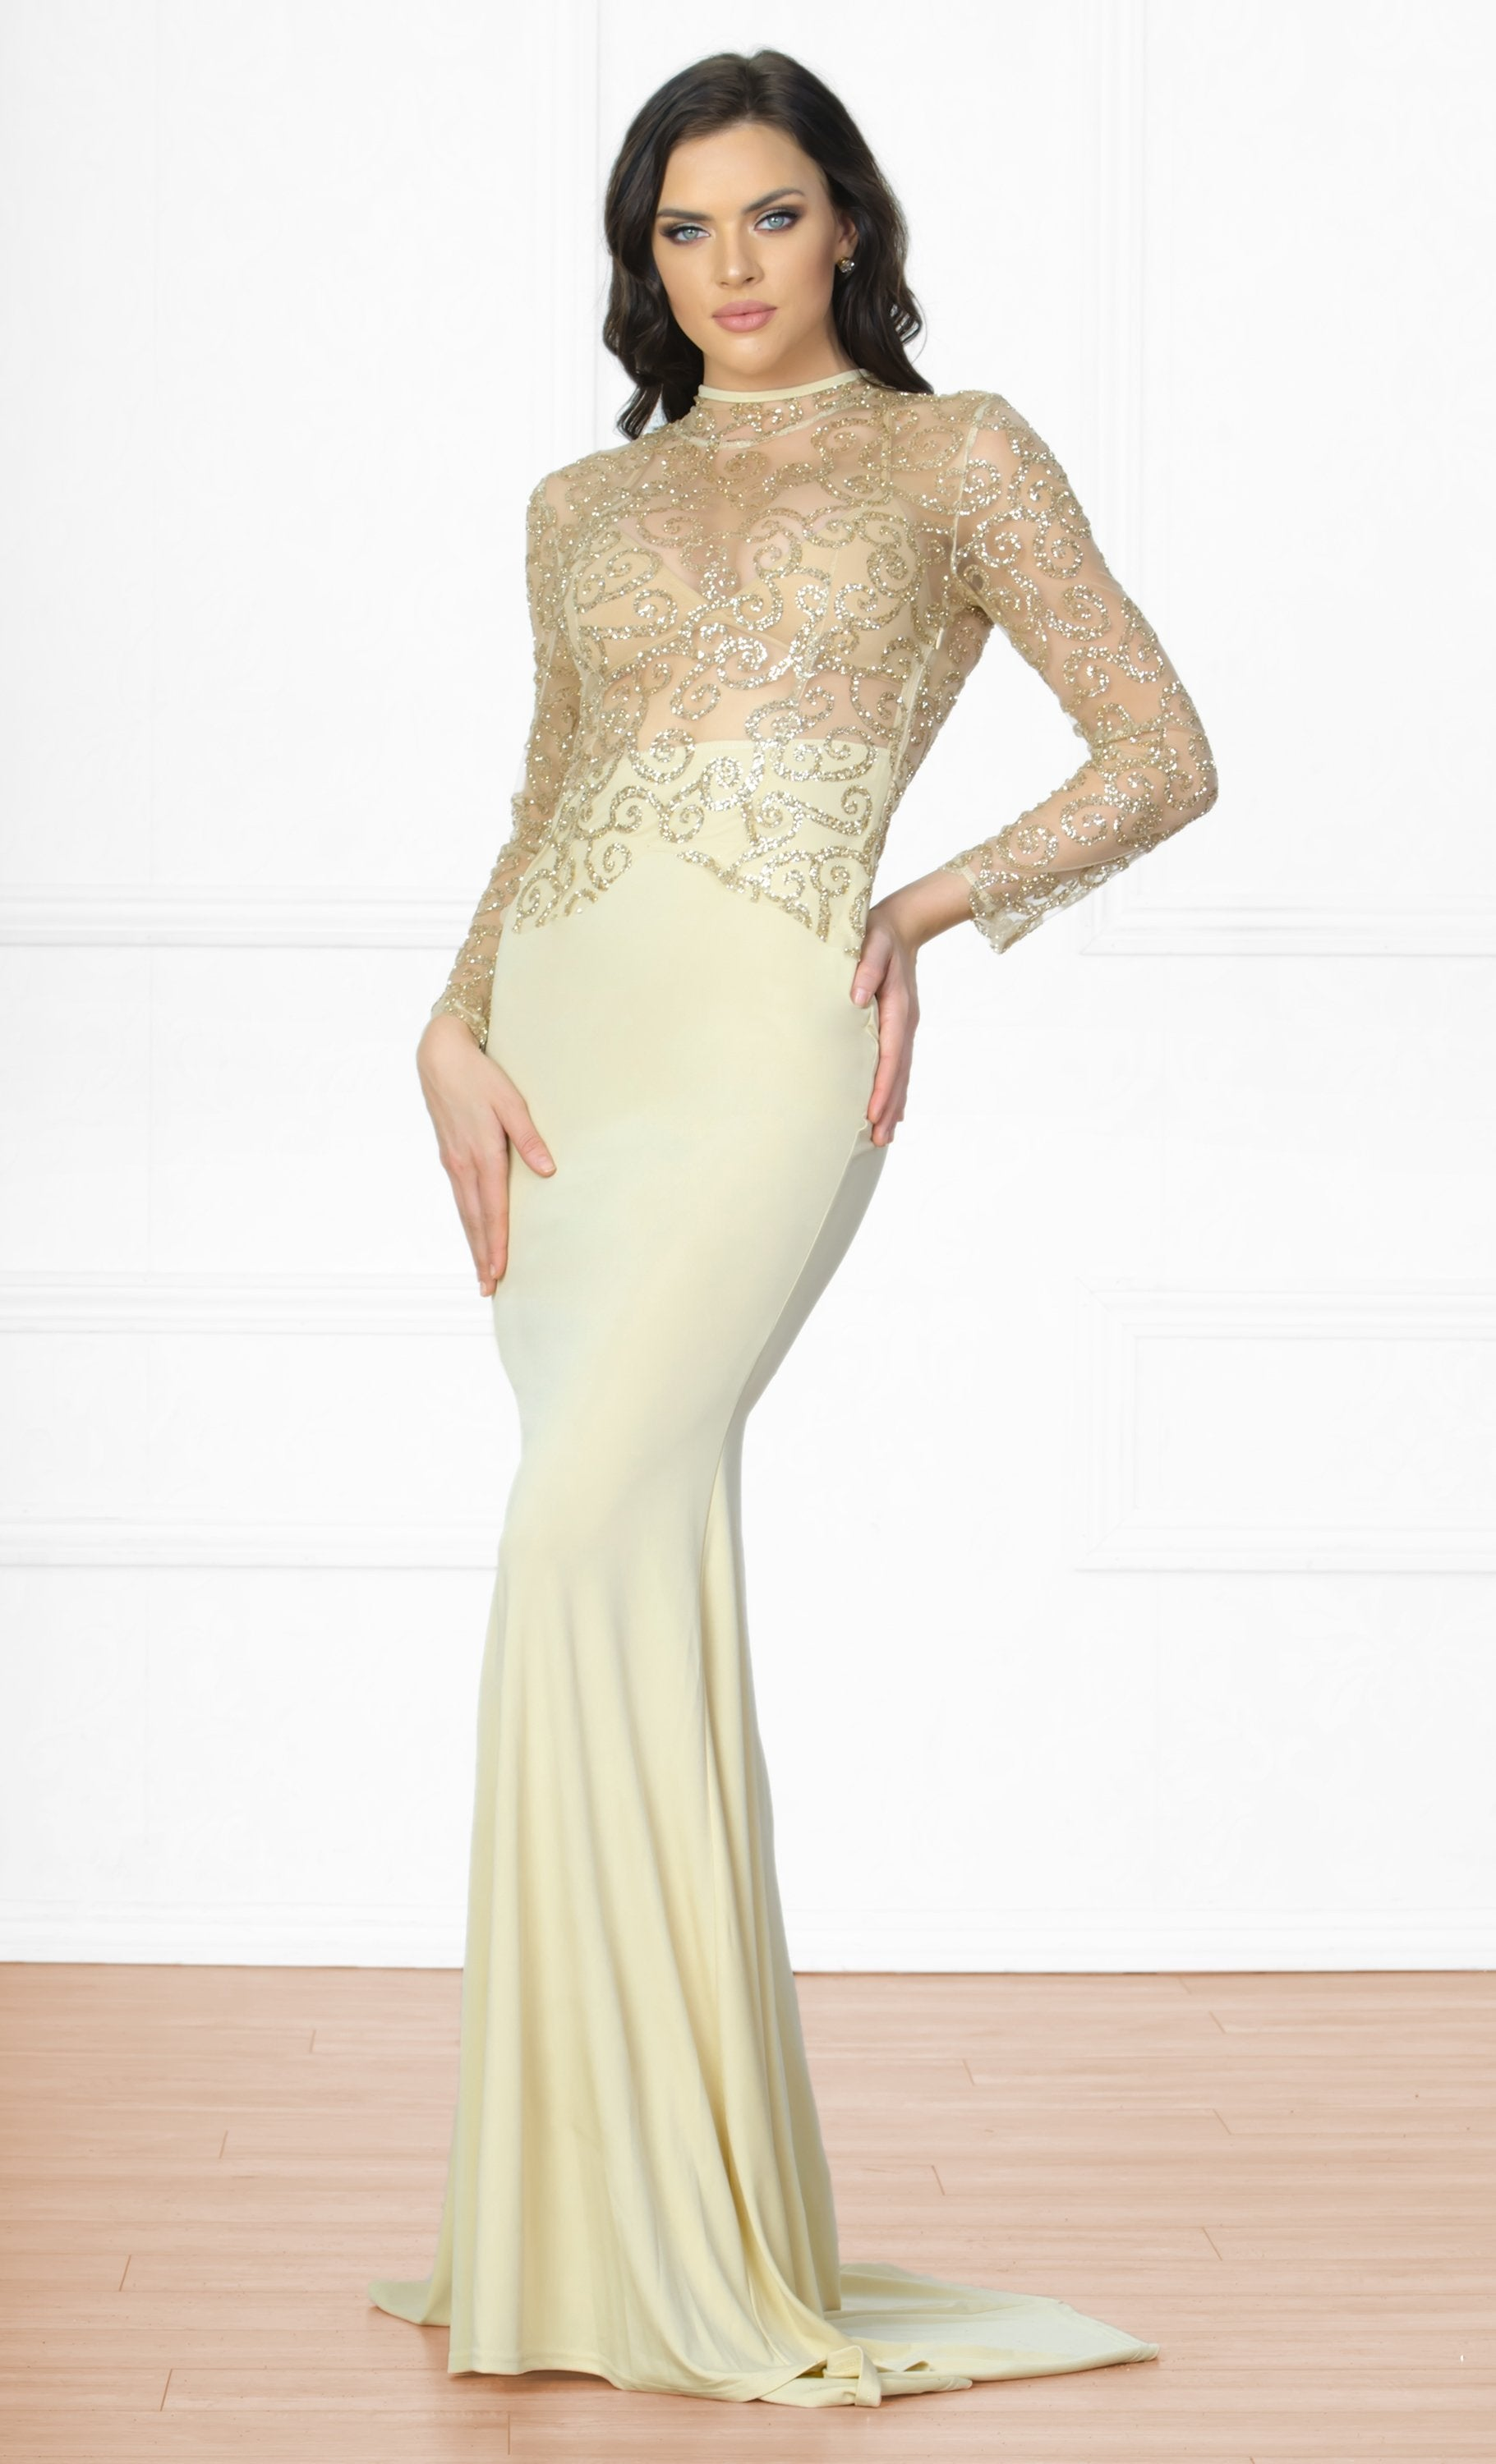 Indie XO Icon Status Nude Gold Long Sleeve Sheer Glitter Mock Neck Cut Out Back Maxi Dress Evening Gown